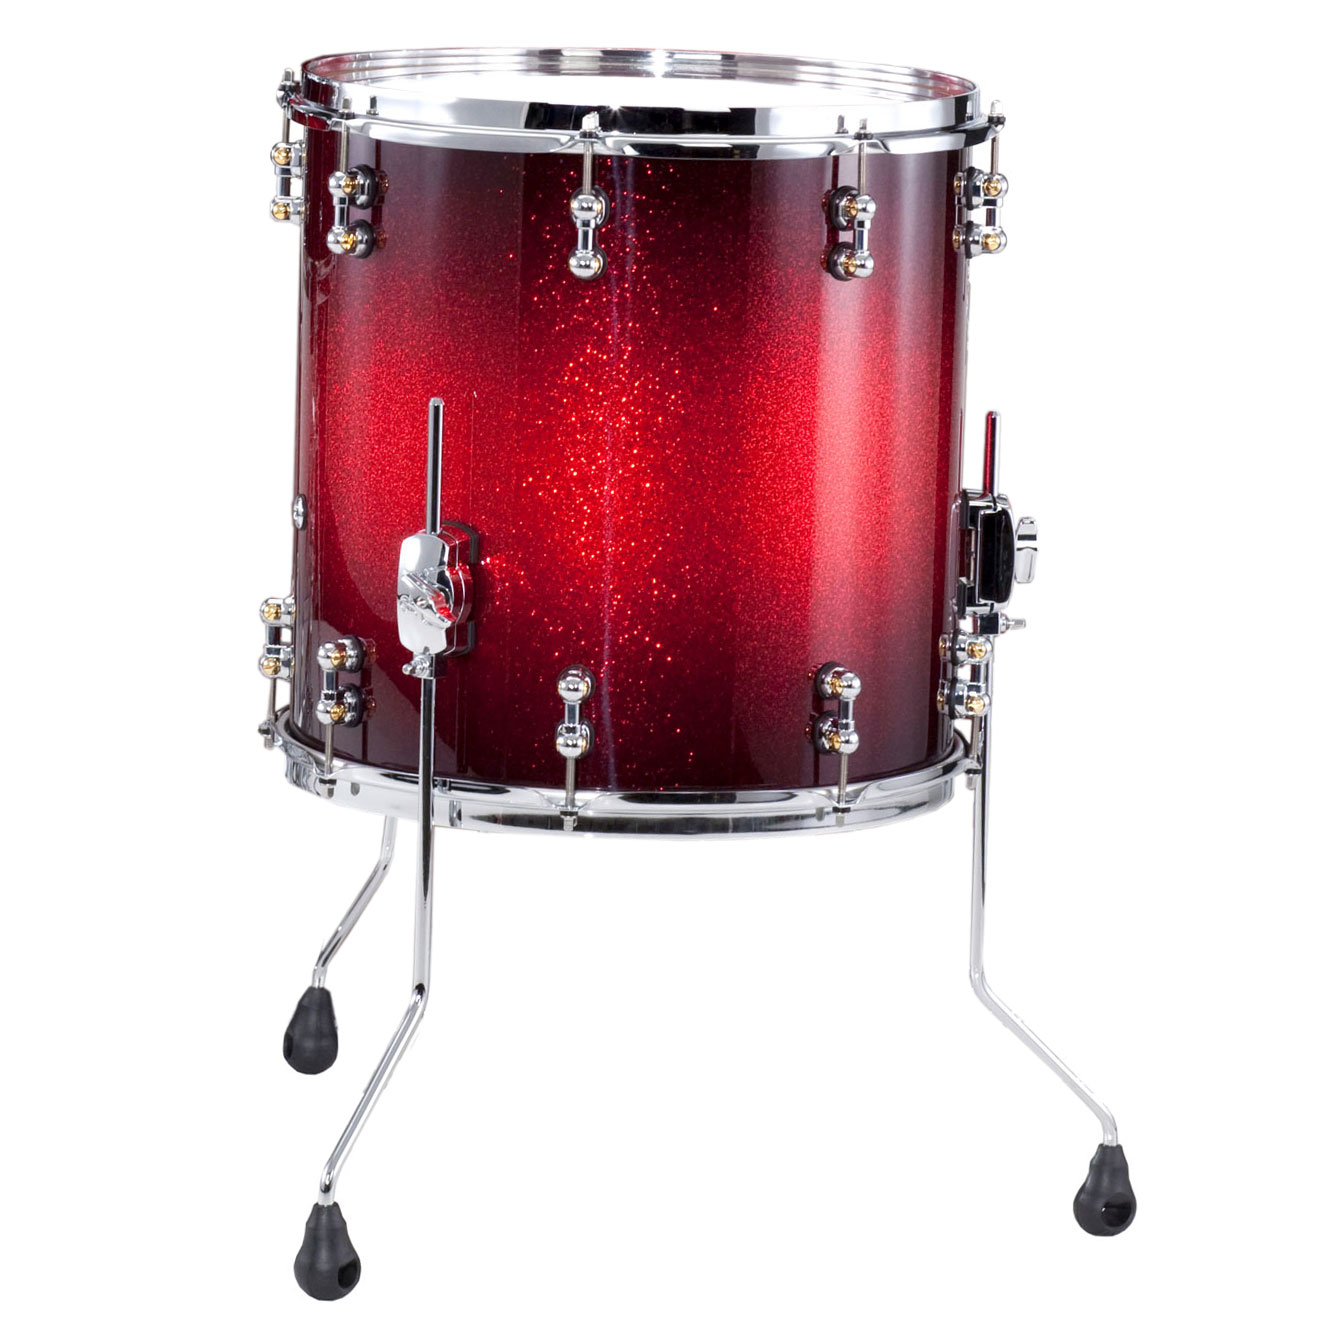 floor toms crush ludwig pearl yamaha pdp lone star percussion. Black Bedroom Furniture Sets. Home Design Ideas